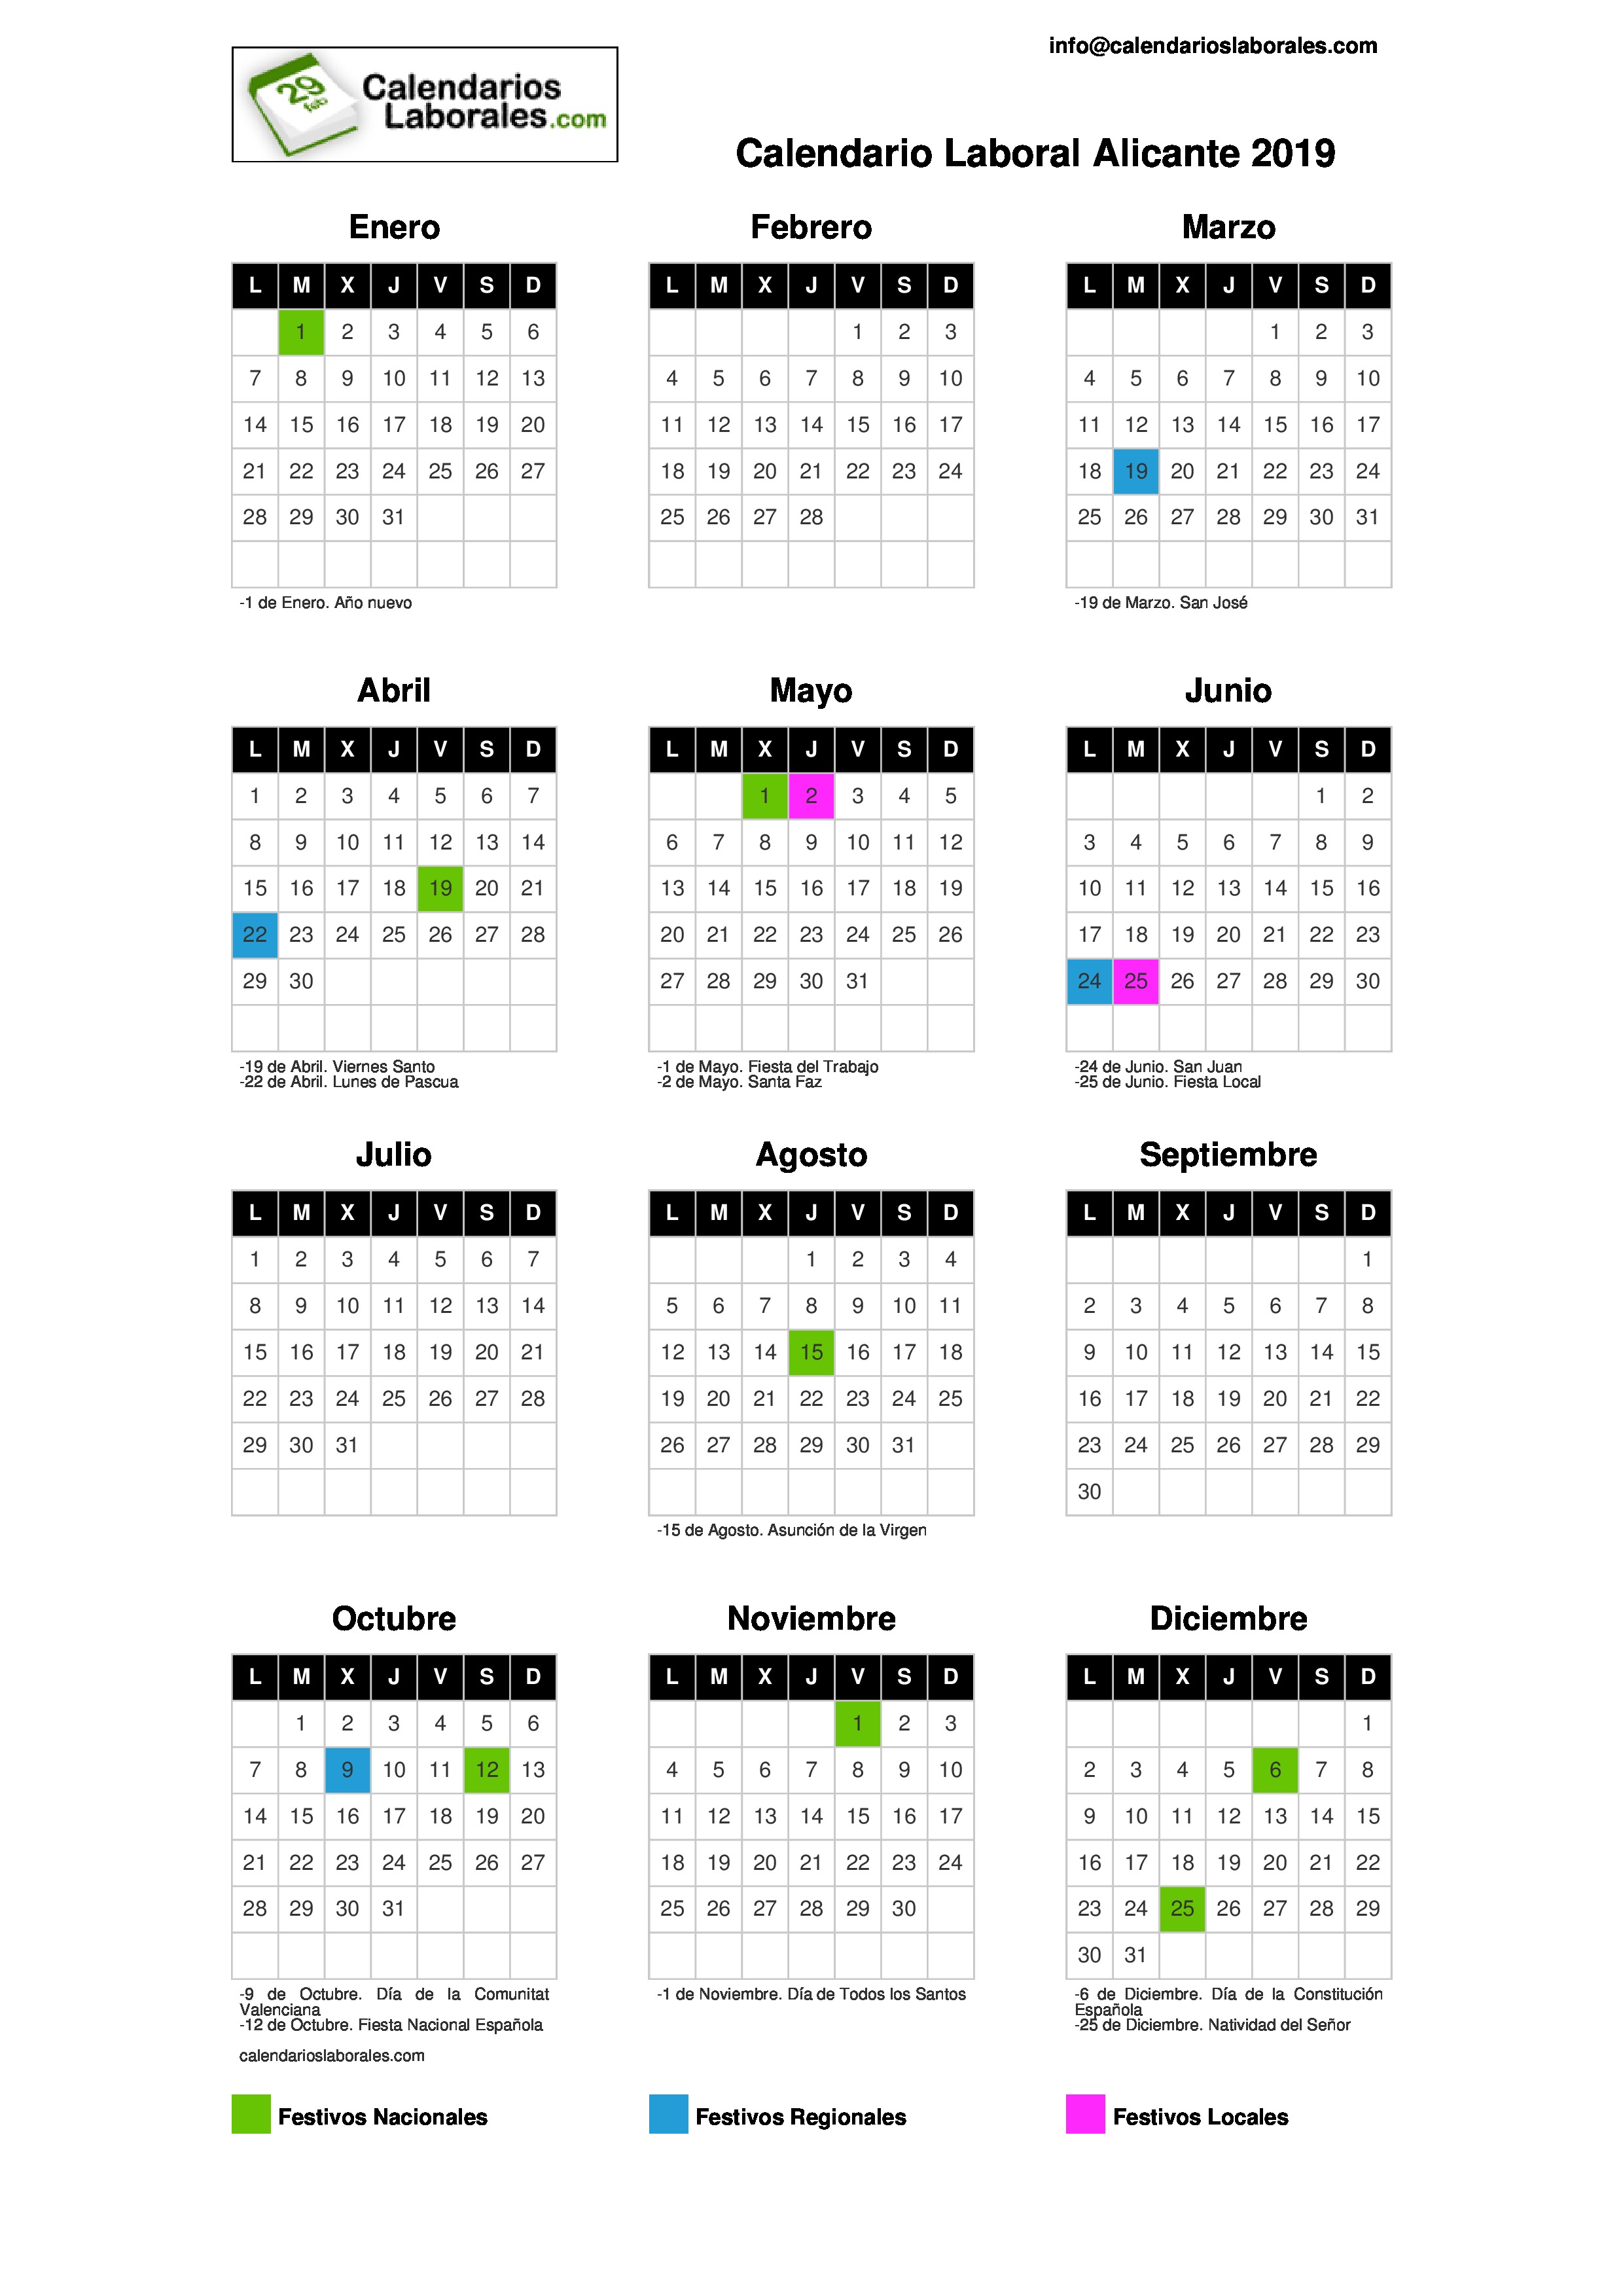 Calendario Laboral Ua.Calendario Laboral Alicante 2019